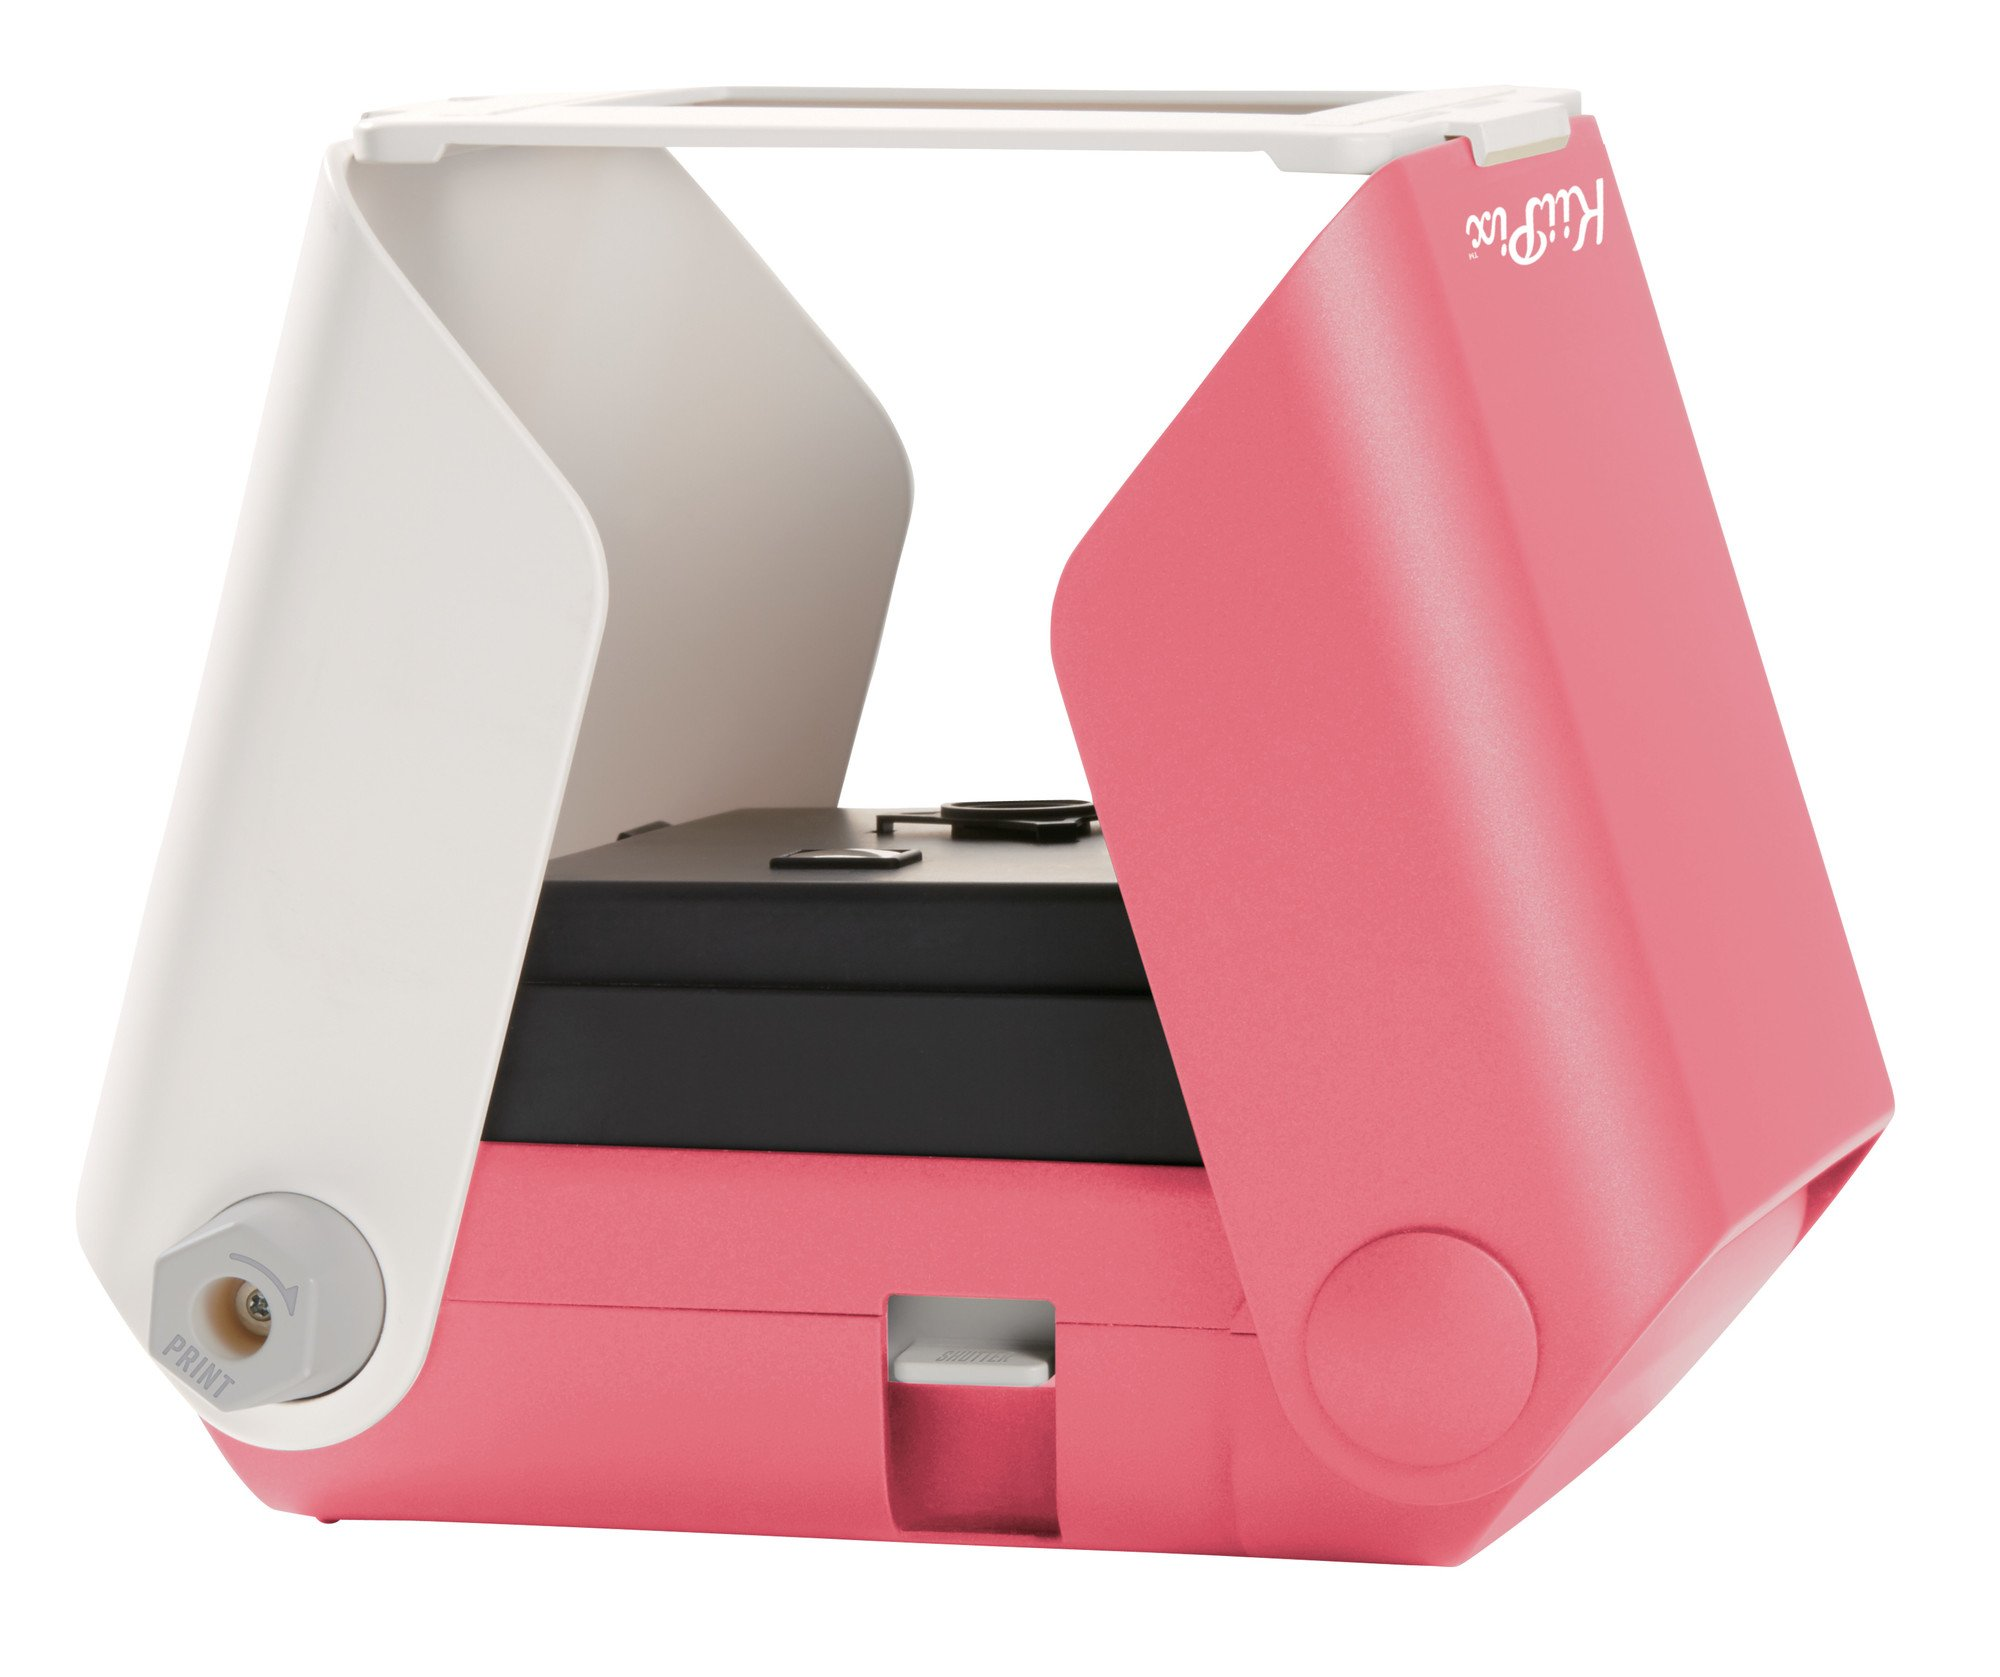 KiiPix Smartphone Picture Printer, Pink | Instantly Print Fun, Retro-Style Photos Right from Smartphone Screen | Portable | No Batteries Required | Great for Crafts, Parties and More!